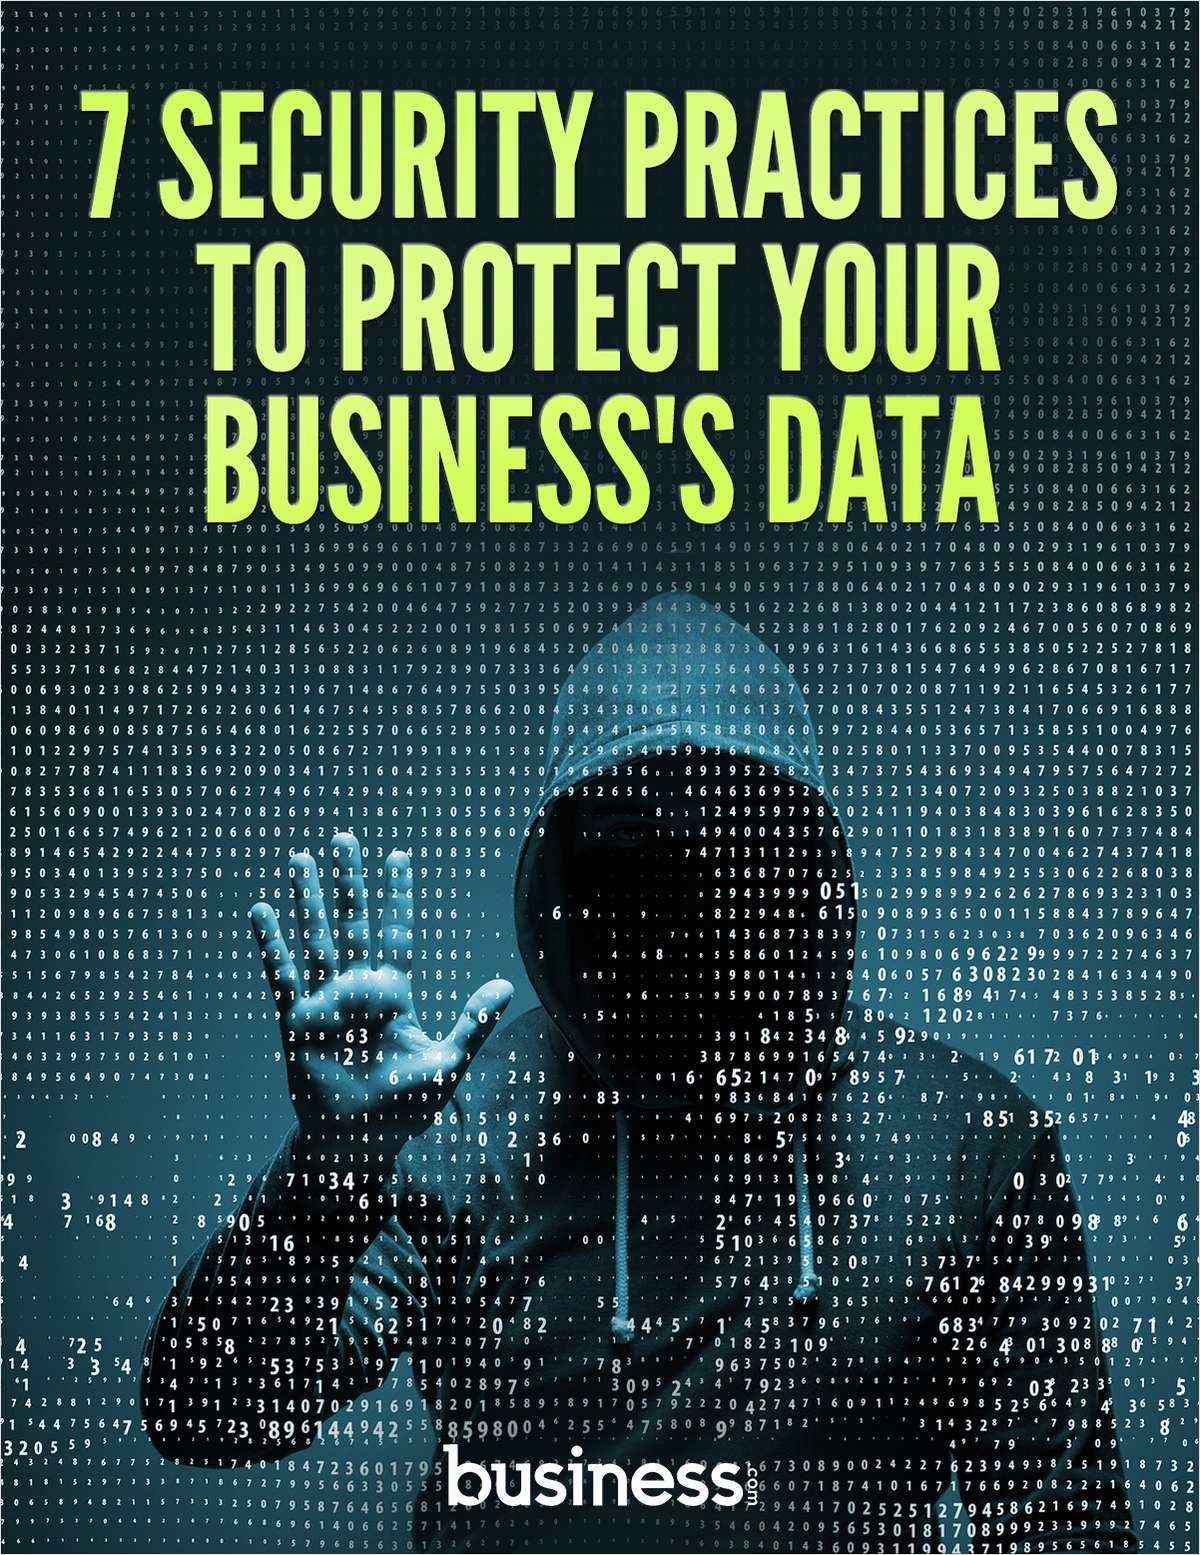 7 Security Practices to Protect Your Business's Data